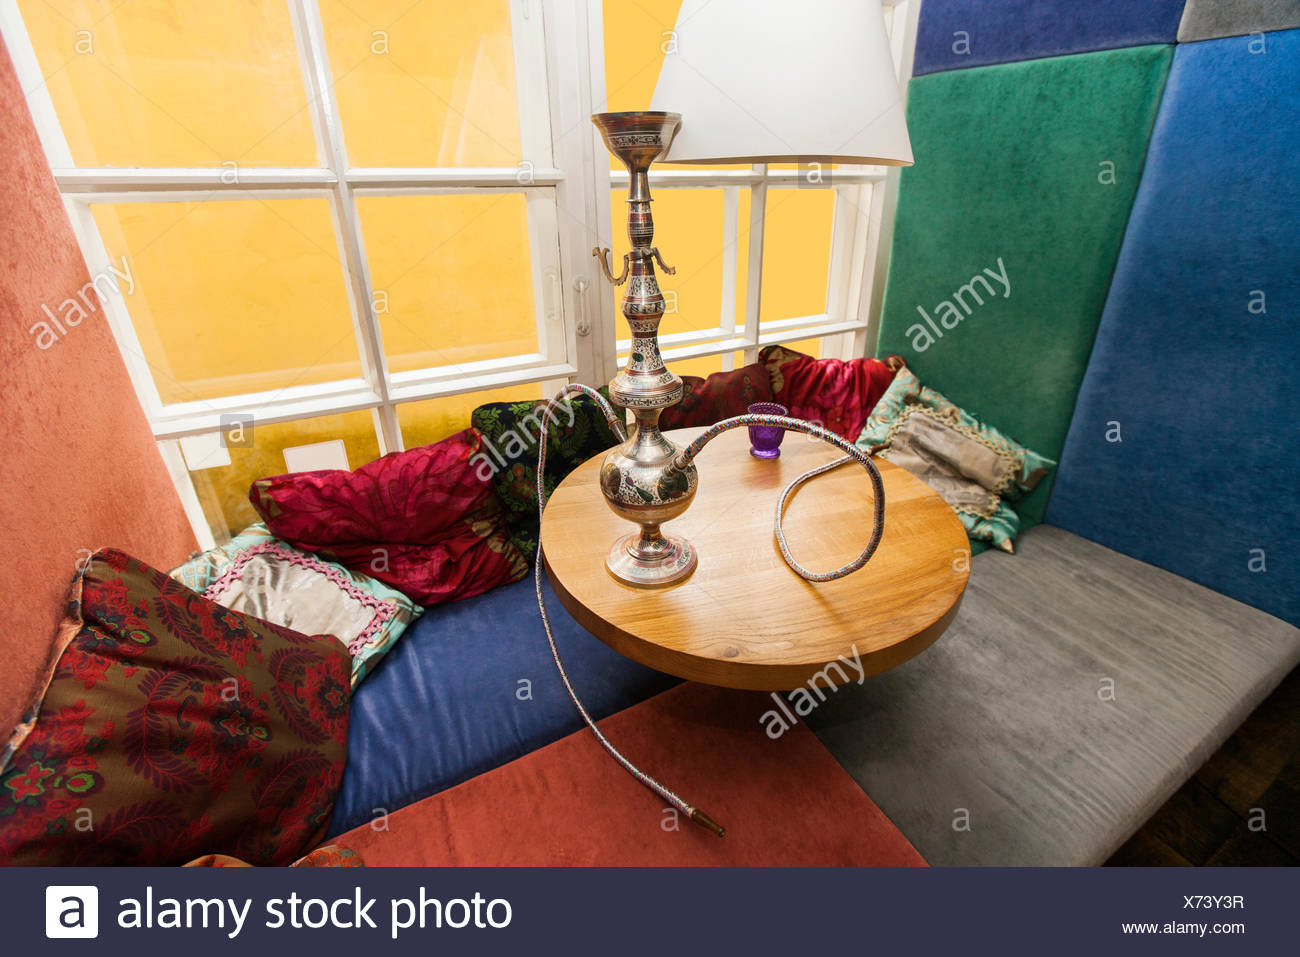 Hookah On Table Stock Photos Hookah On Table Stock Images